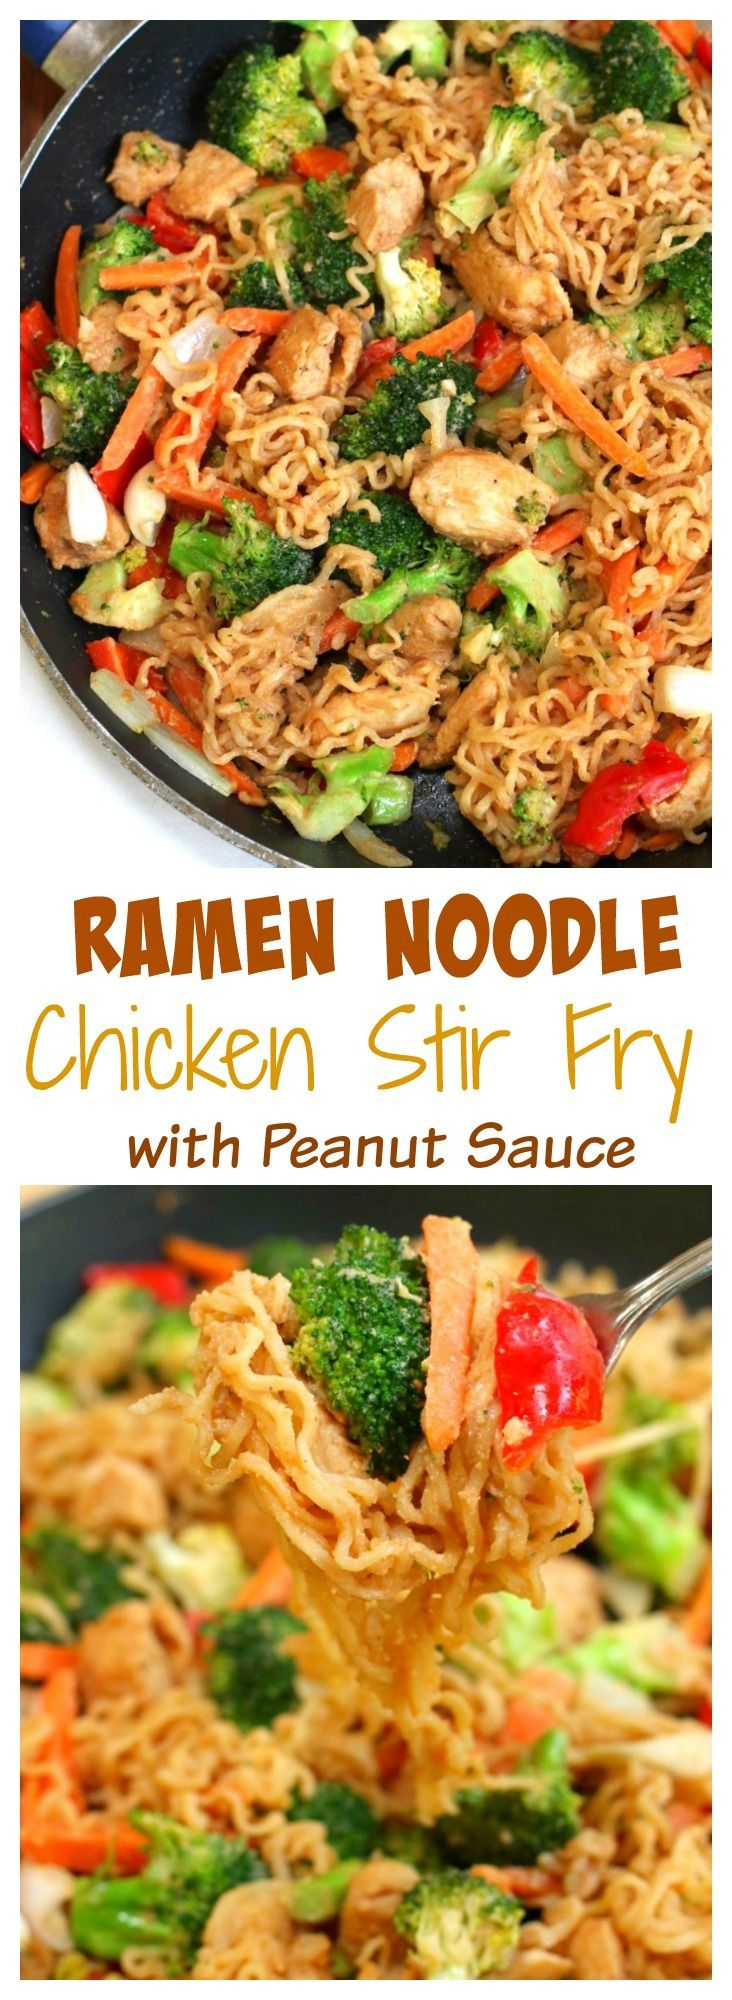 Ramen Noodle Chicken Stir Fry with Peanut Sauce -- Personal Notes:  More noodles, thin down the peanut sauce